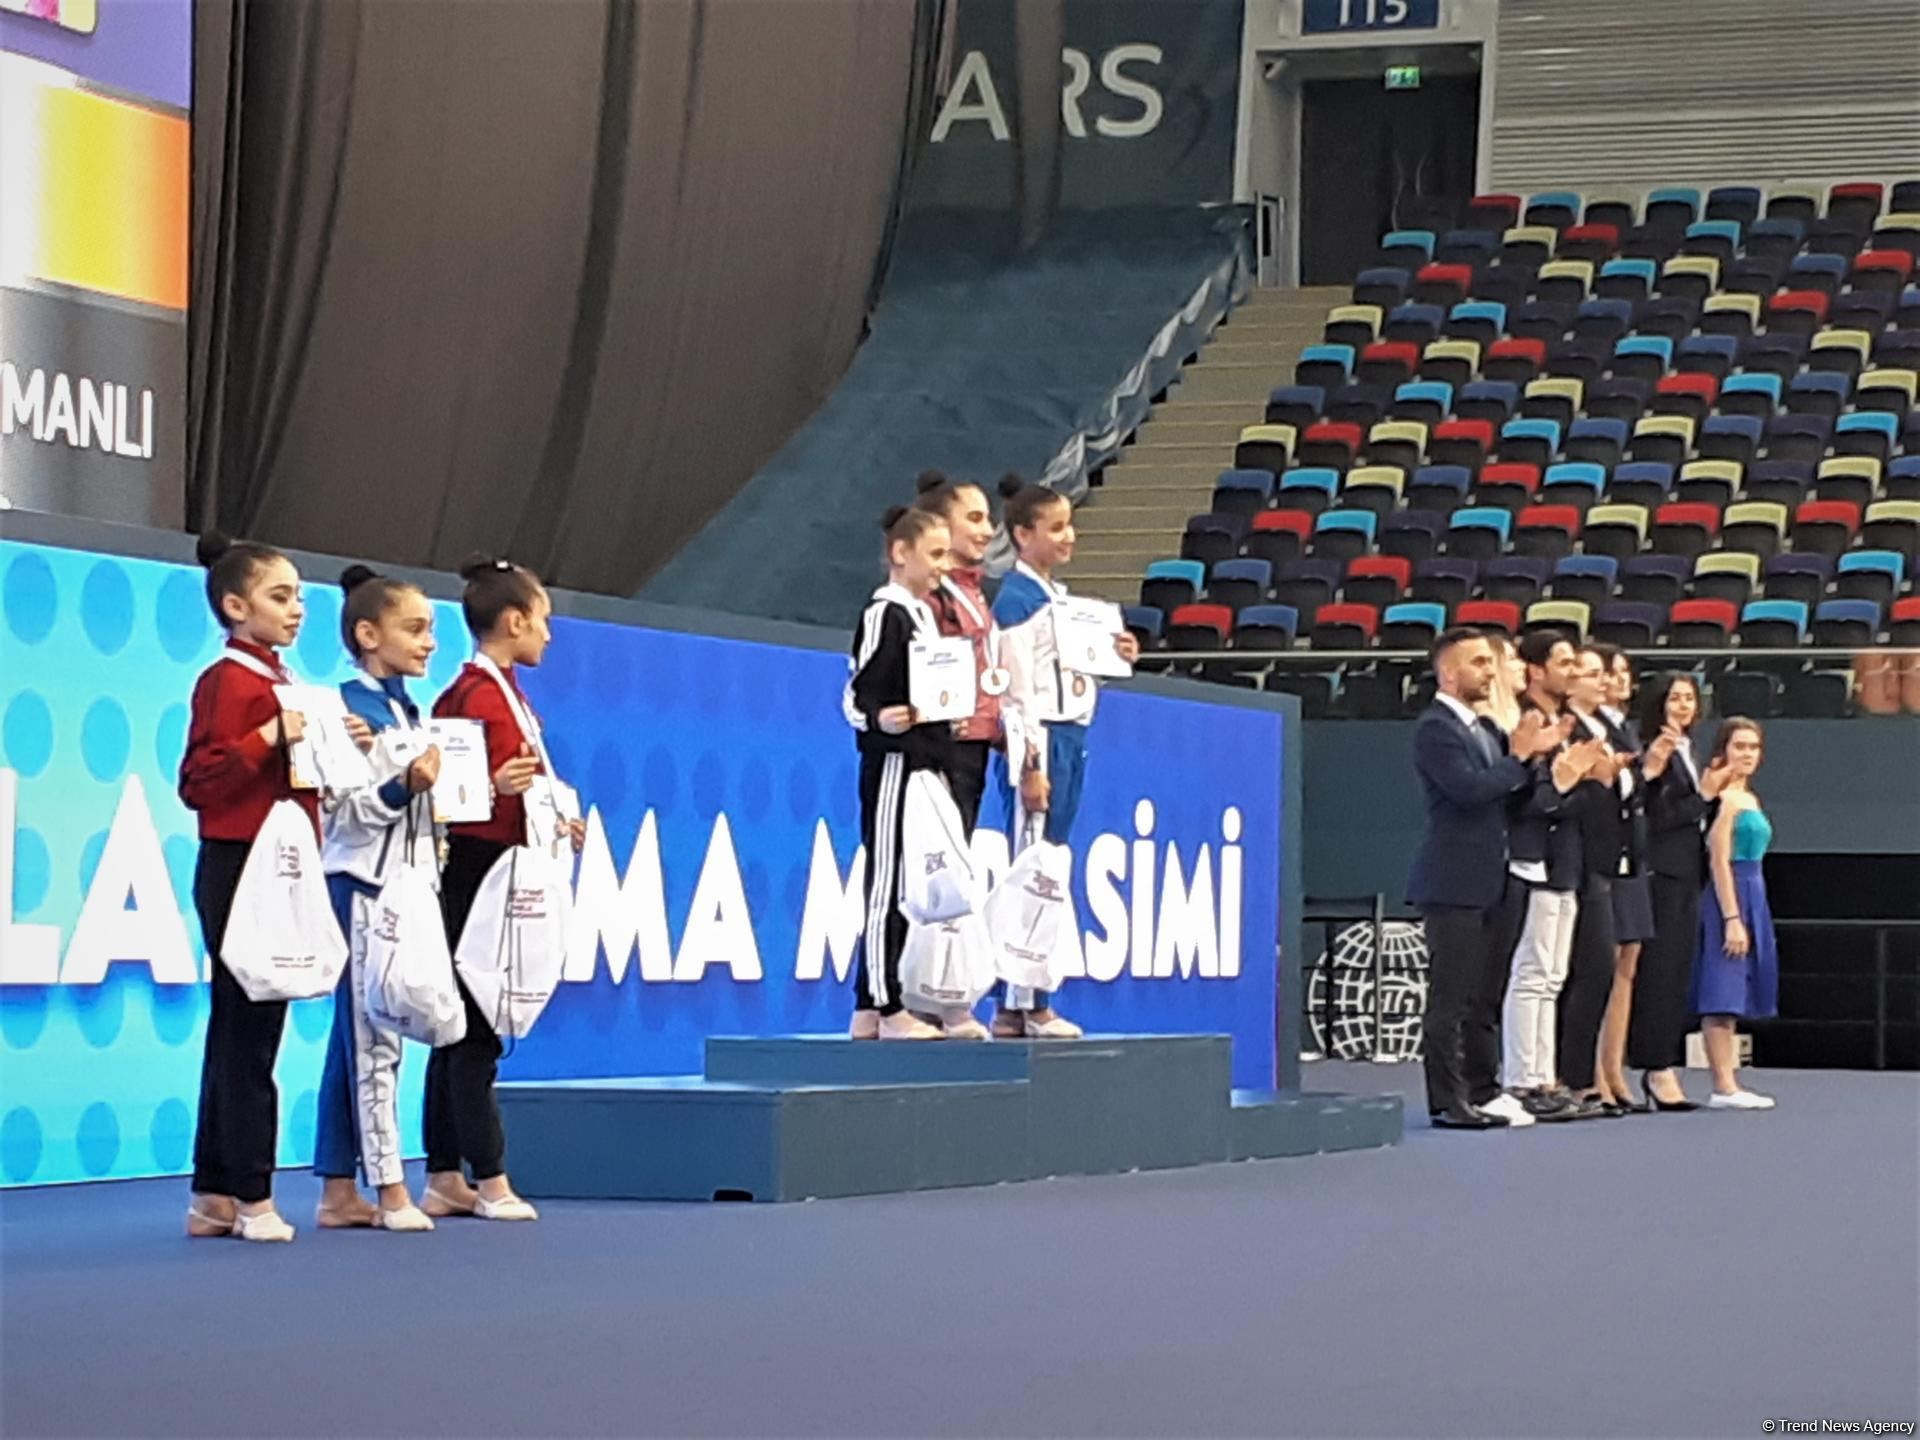 "Baku hosts awarding ceremony for winners of Rhythmic Gymnastics ""pre-juniors"" Interregional Cup (PHOTO)"